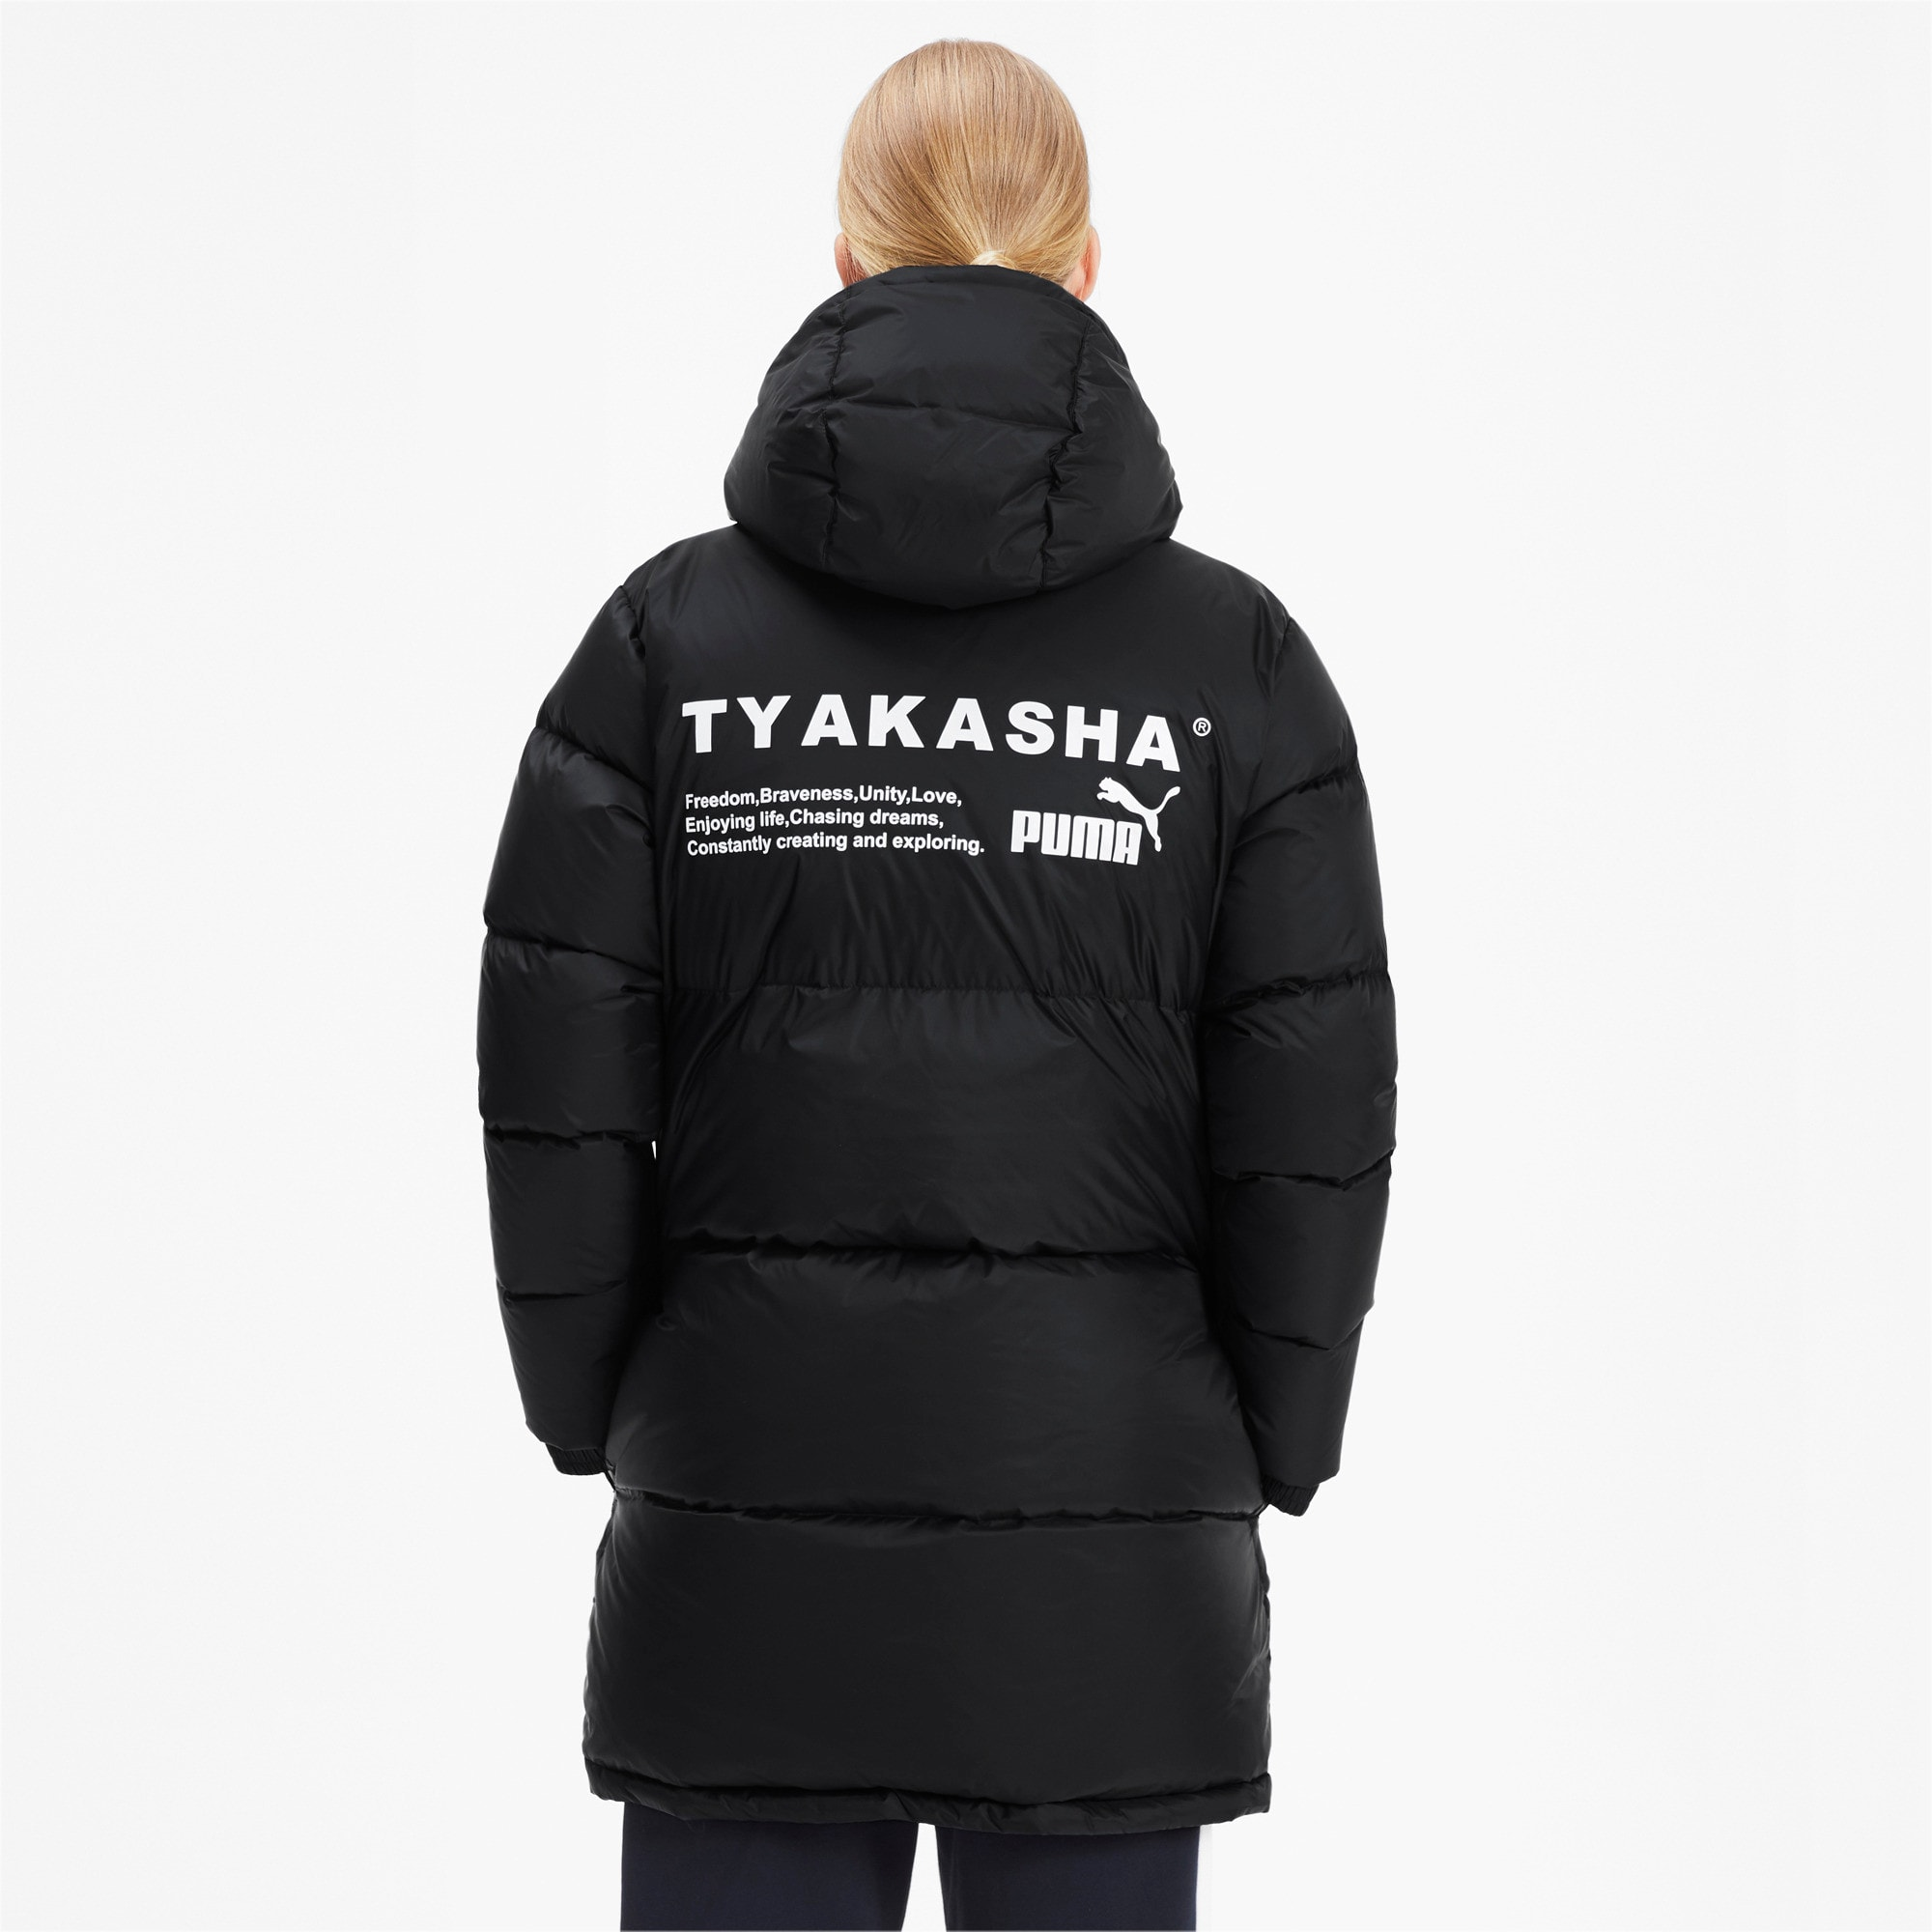 Thumbnail 3 of PUMA x TYAKASHA Woven Down Parka, Puma Black, medium